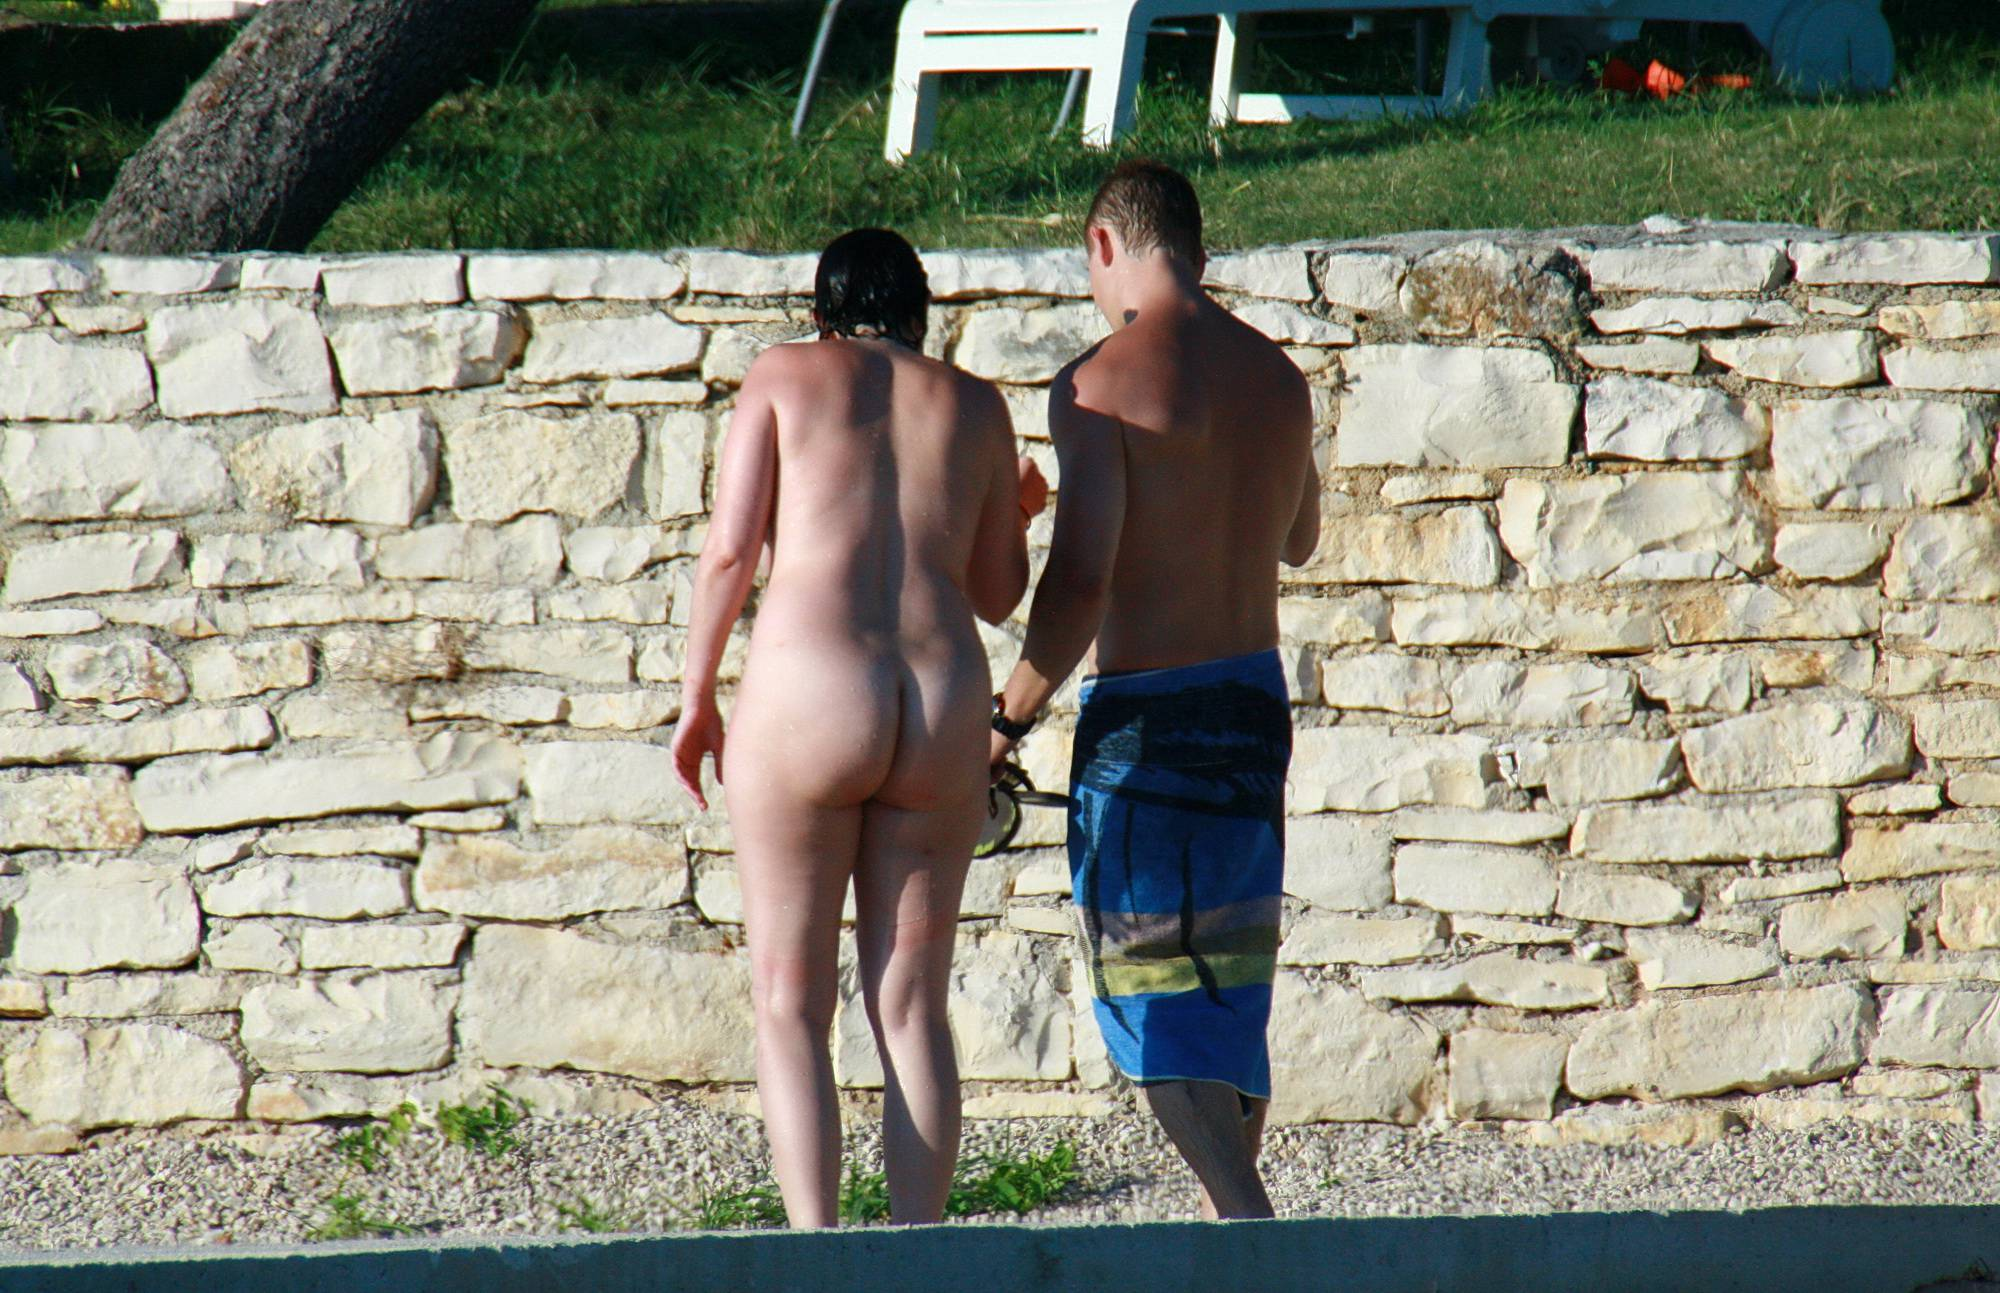 Nudist Gallery A Perfect Day To Suntan - 1